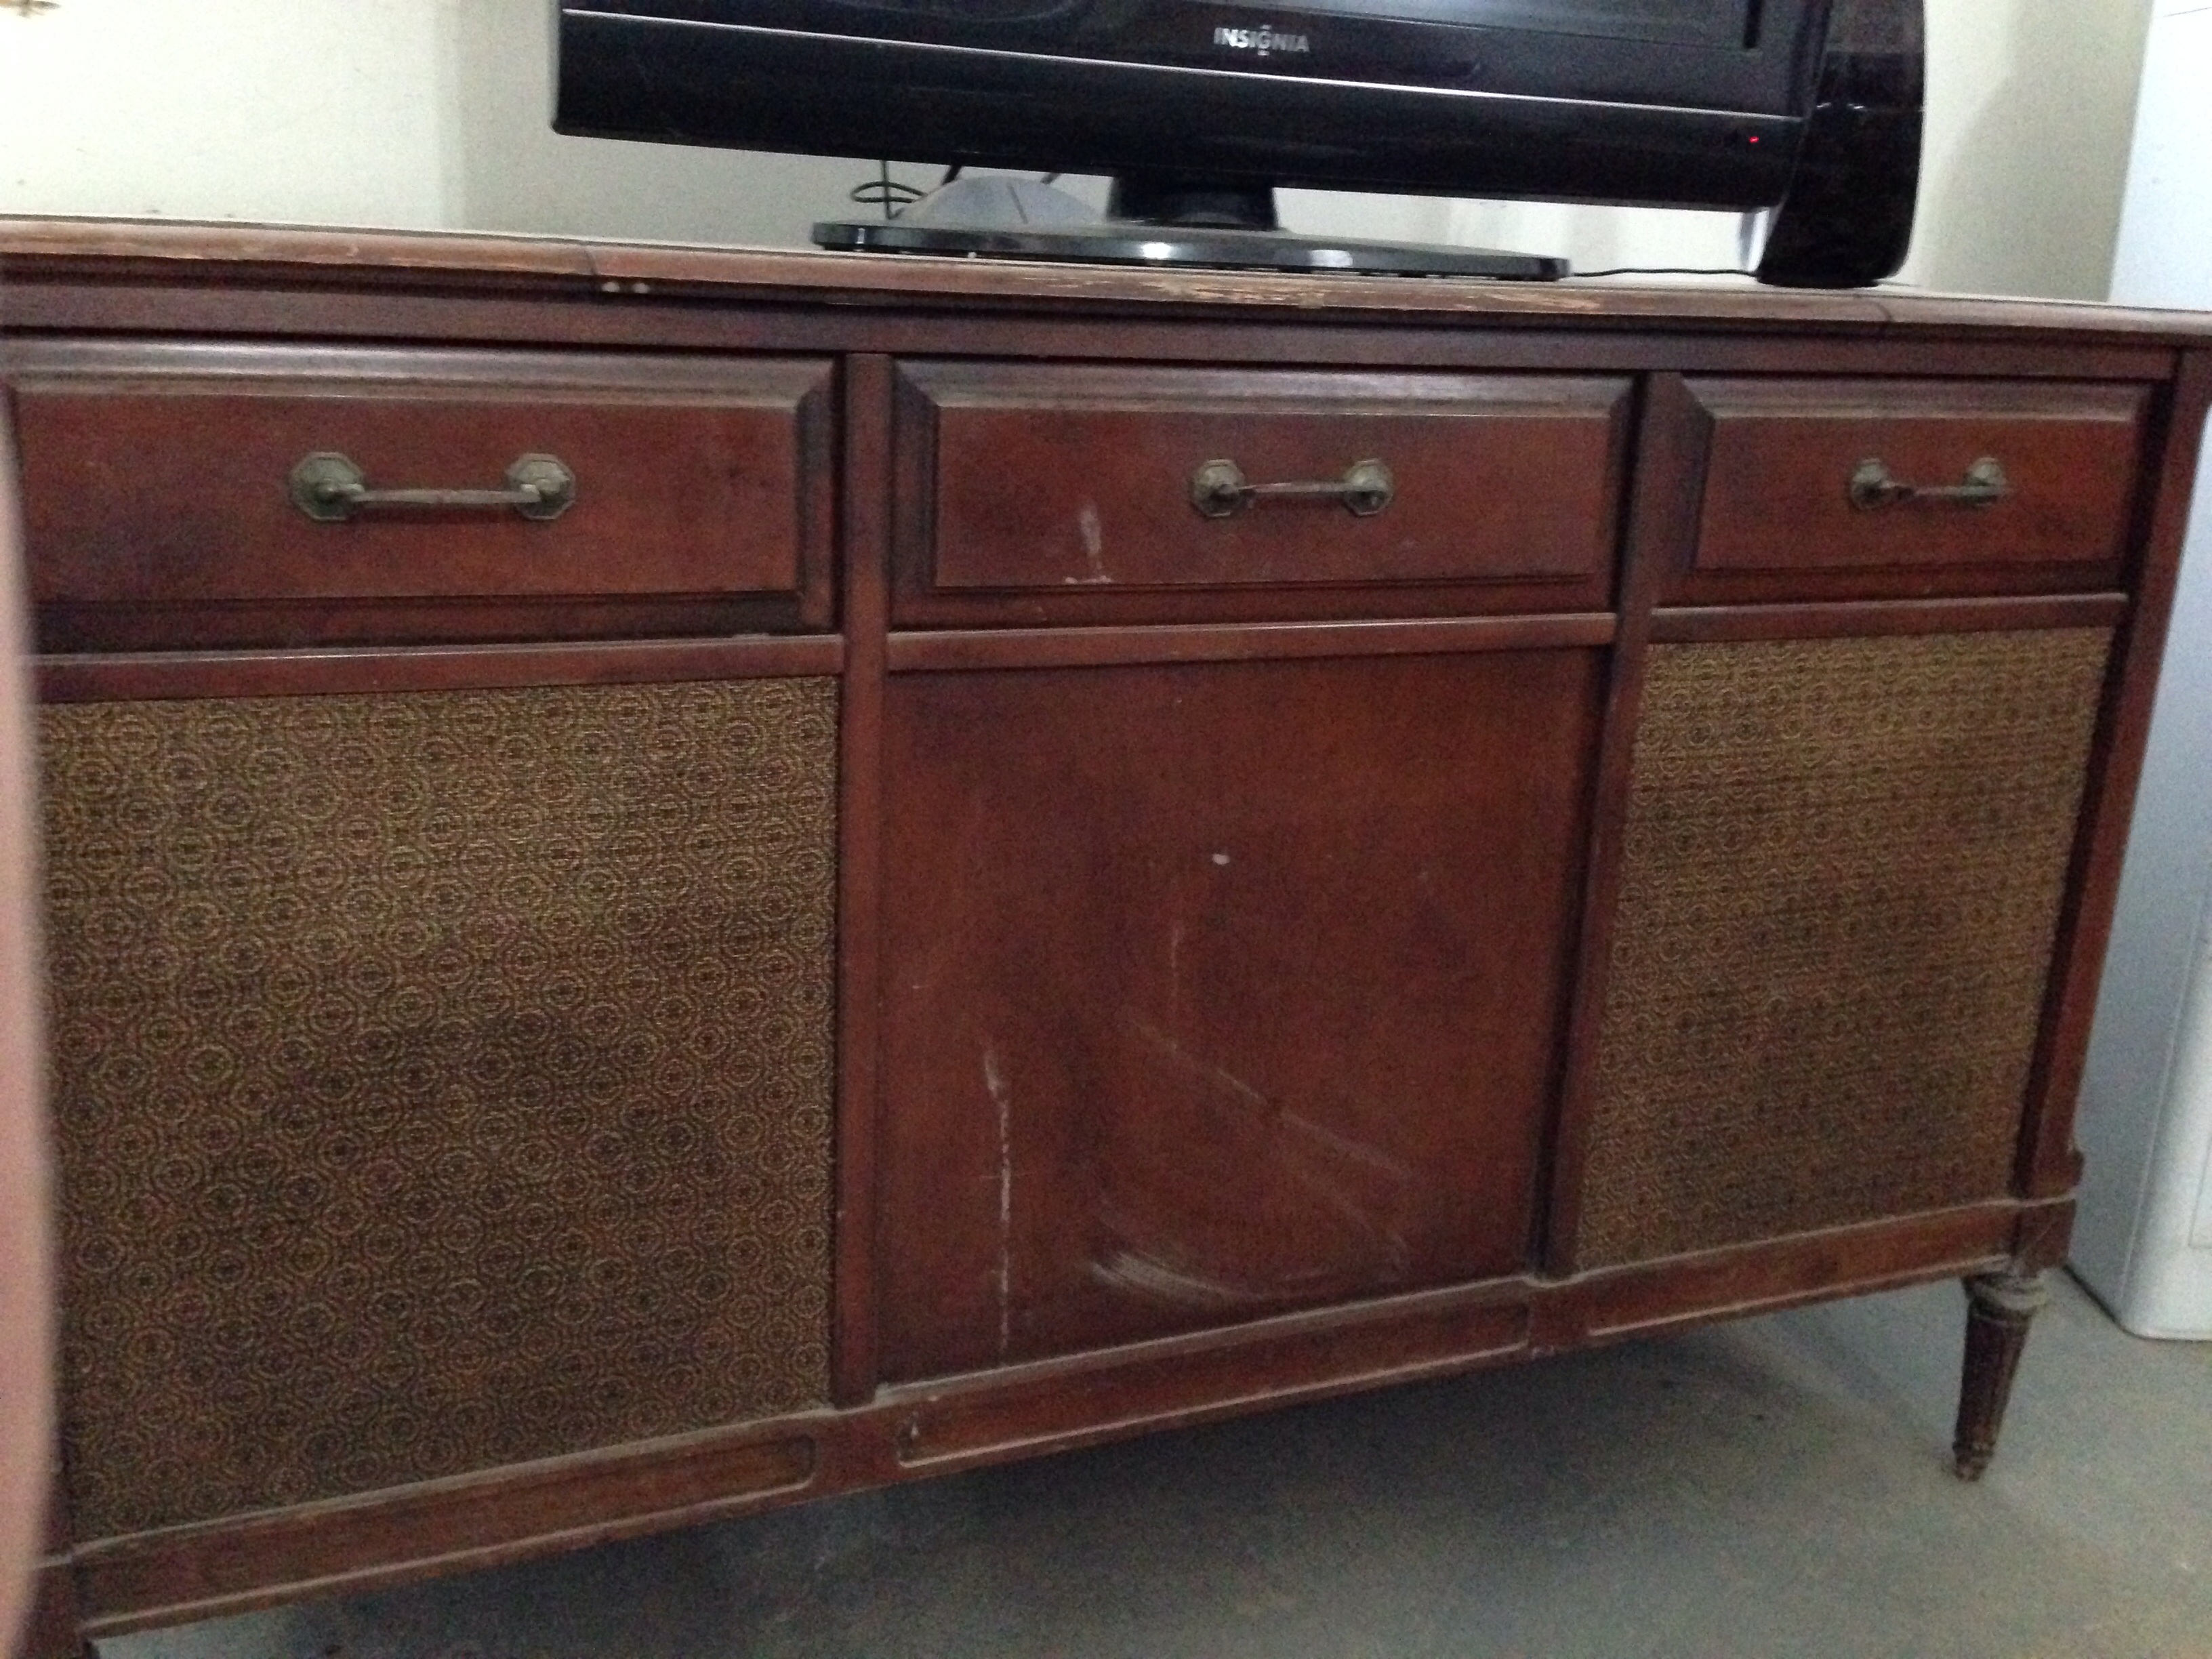 Sears Silvertone Record Player Diagram Ge Players Trimline Vintage Console Wiring In Cabinet Antique Appraisal At